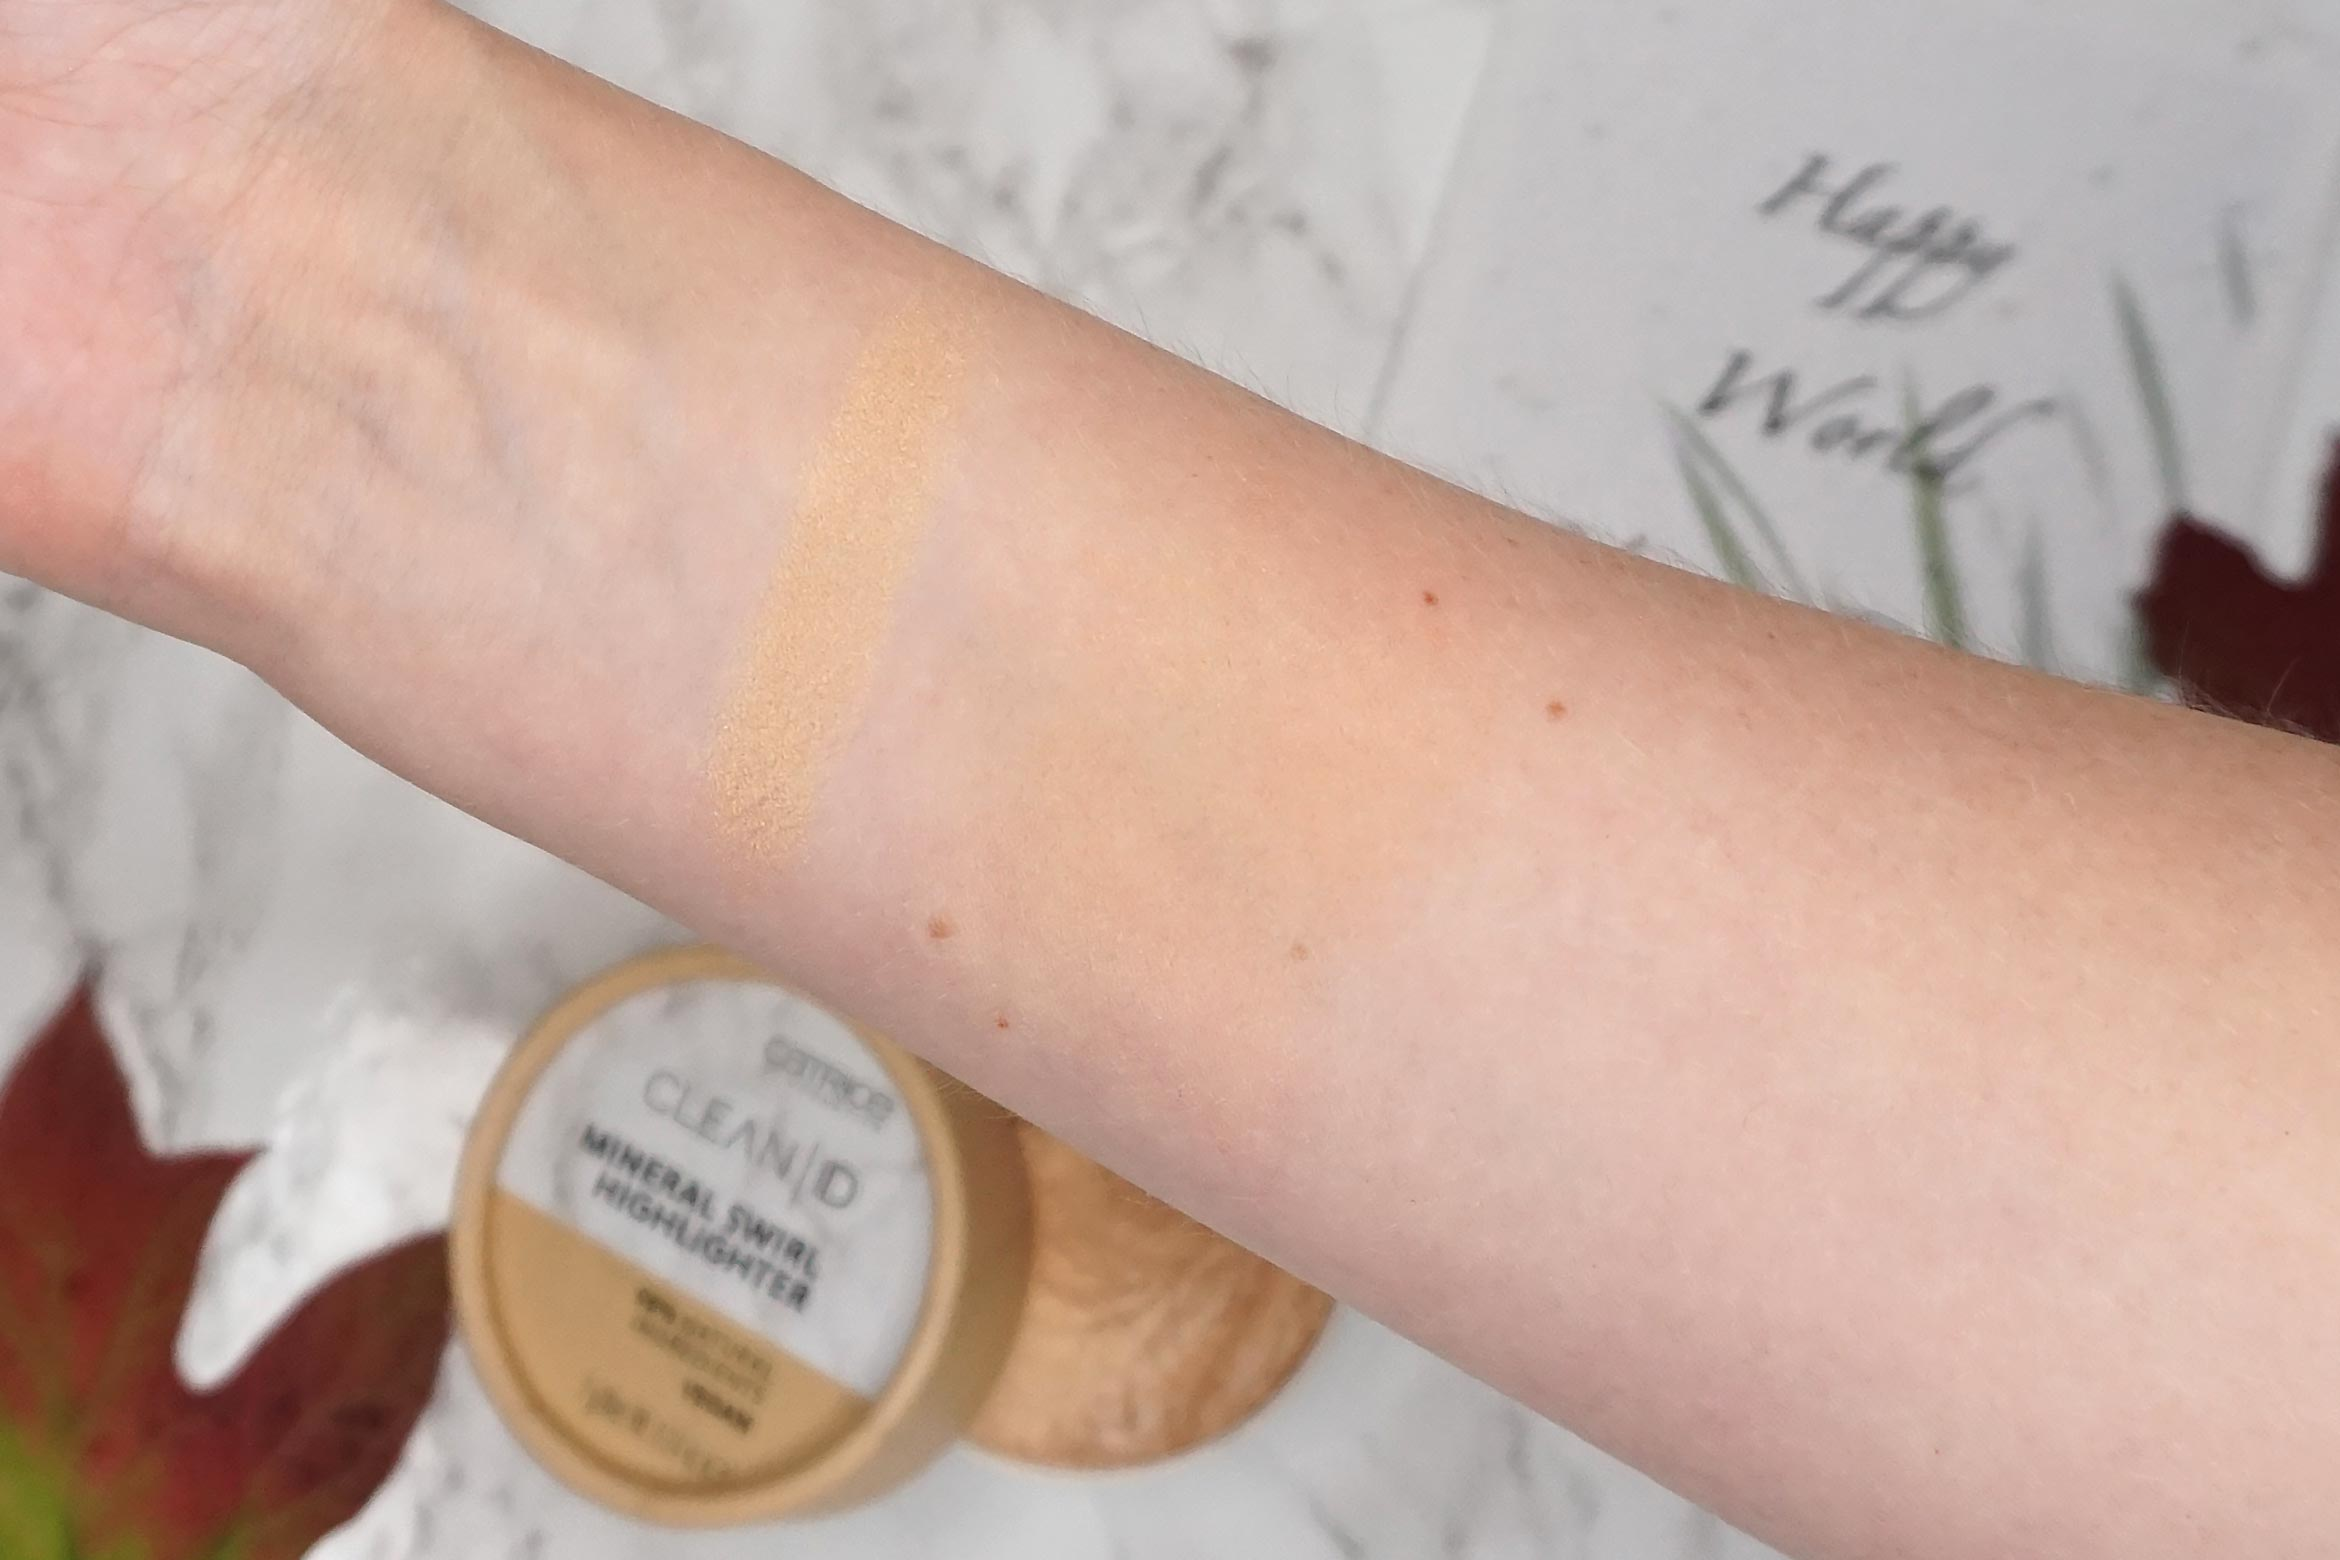 catrice-clean-id-mineral-swirl-highlighter-swatch-020-gold-review